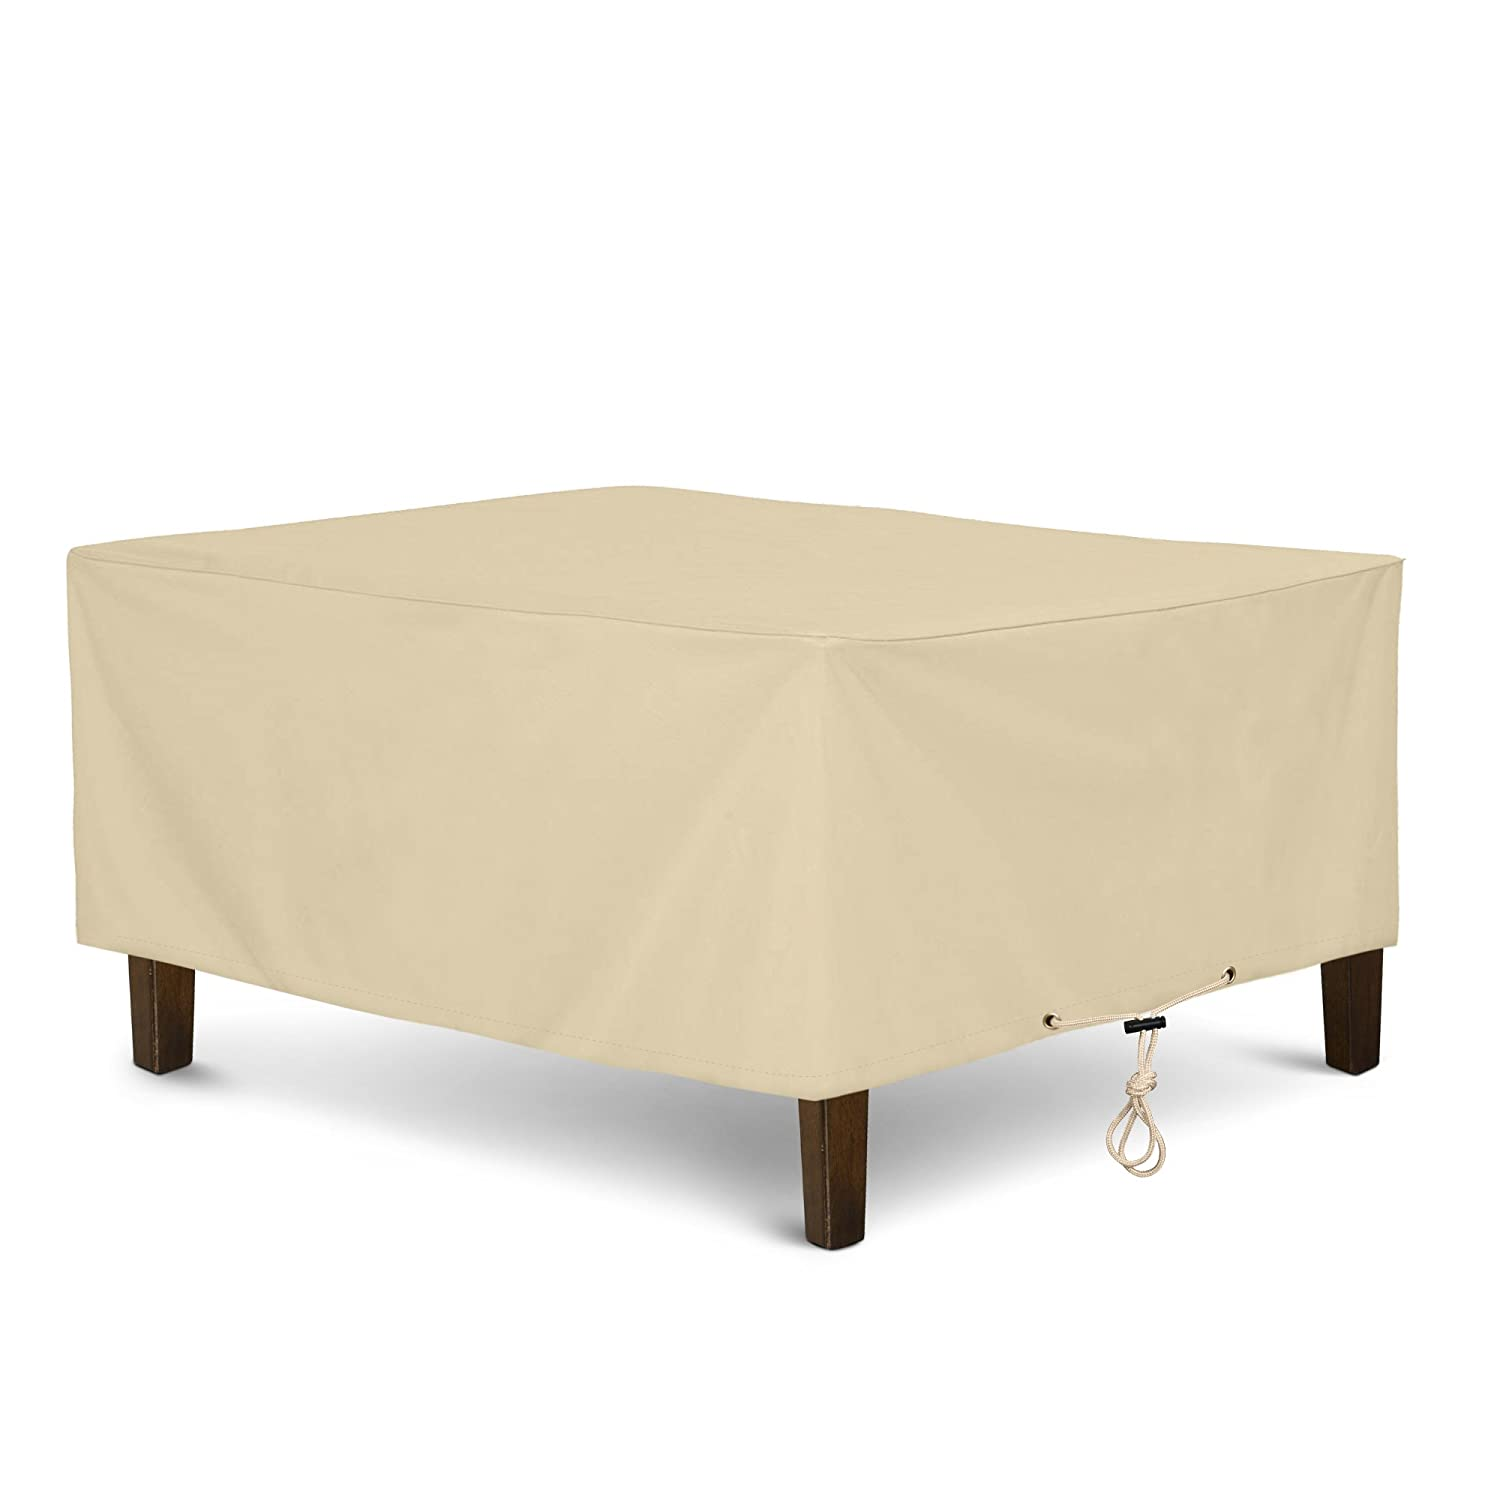 Sunpatio outdoor ottoman cover square coffee table cover heavy duty waterproof patio furniture side table cove all weather protection